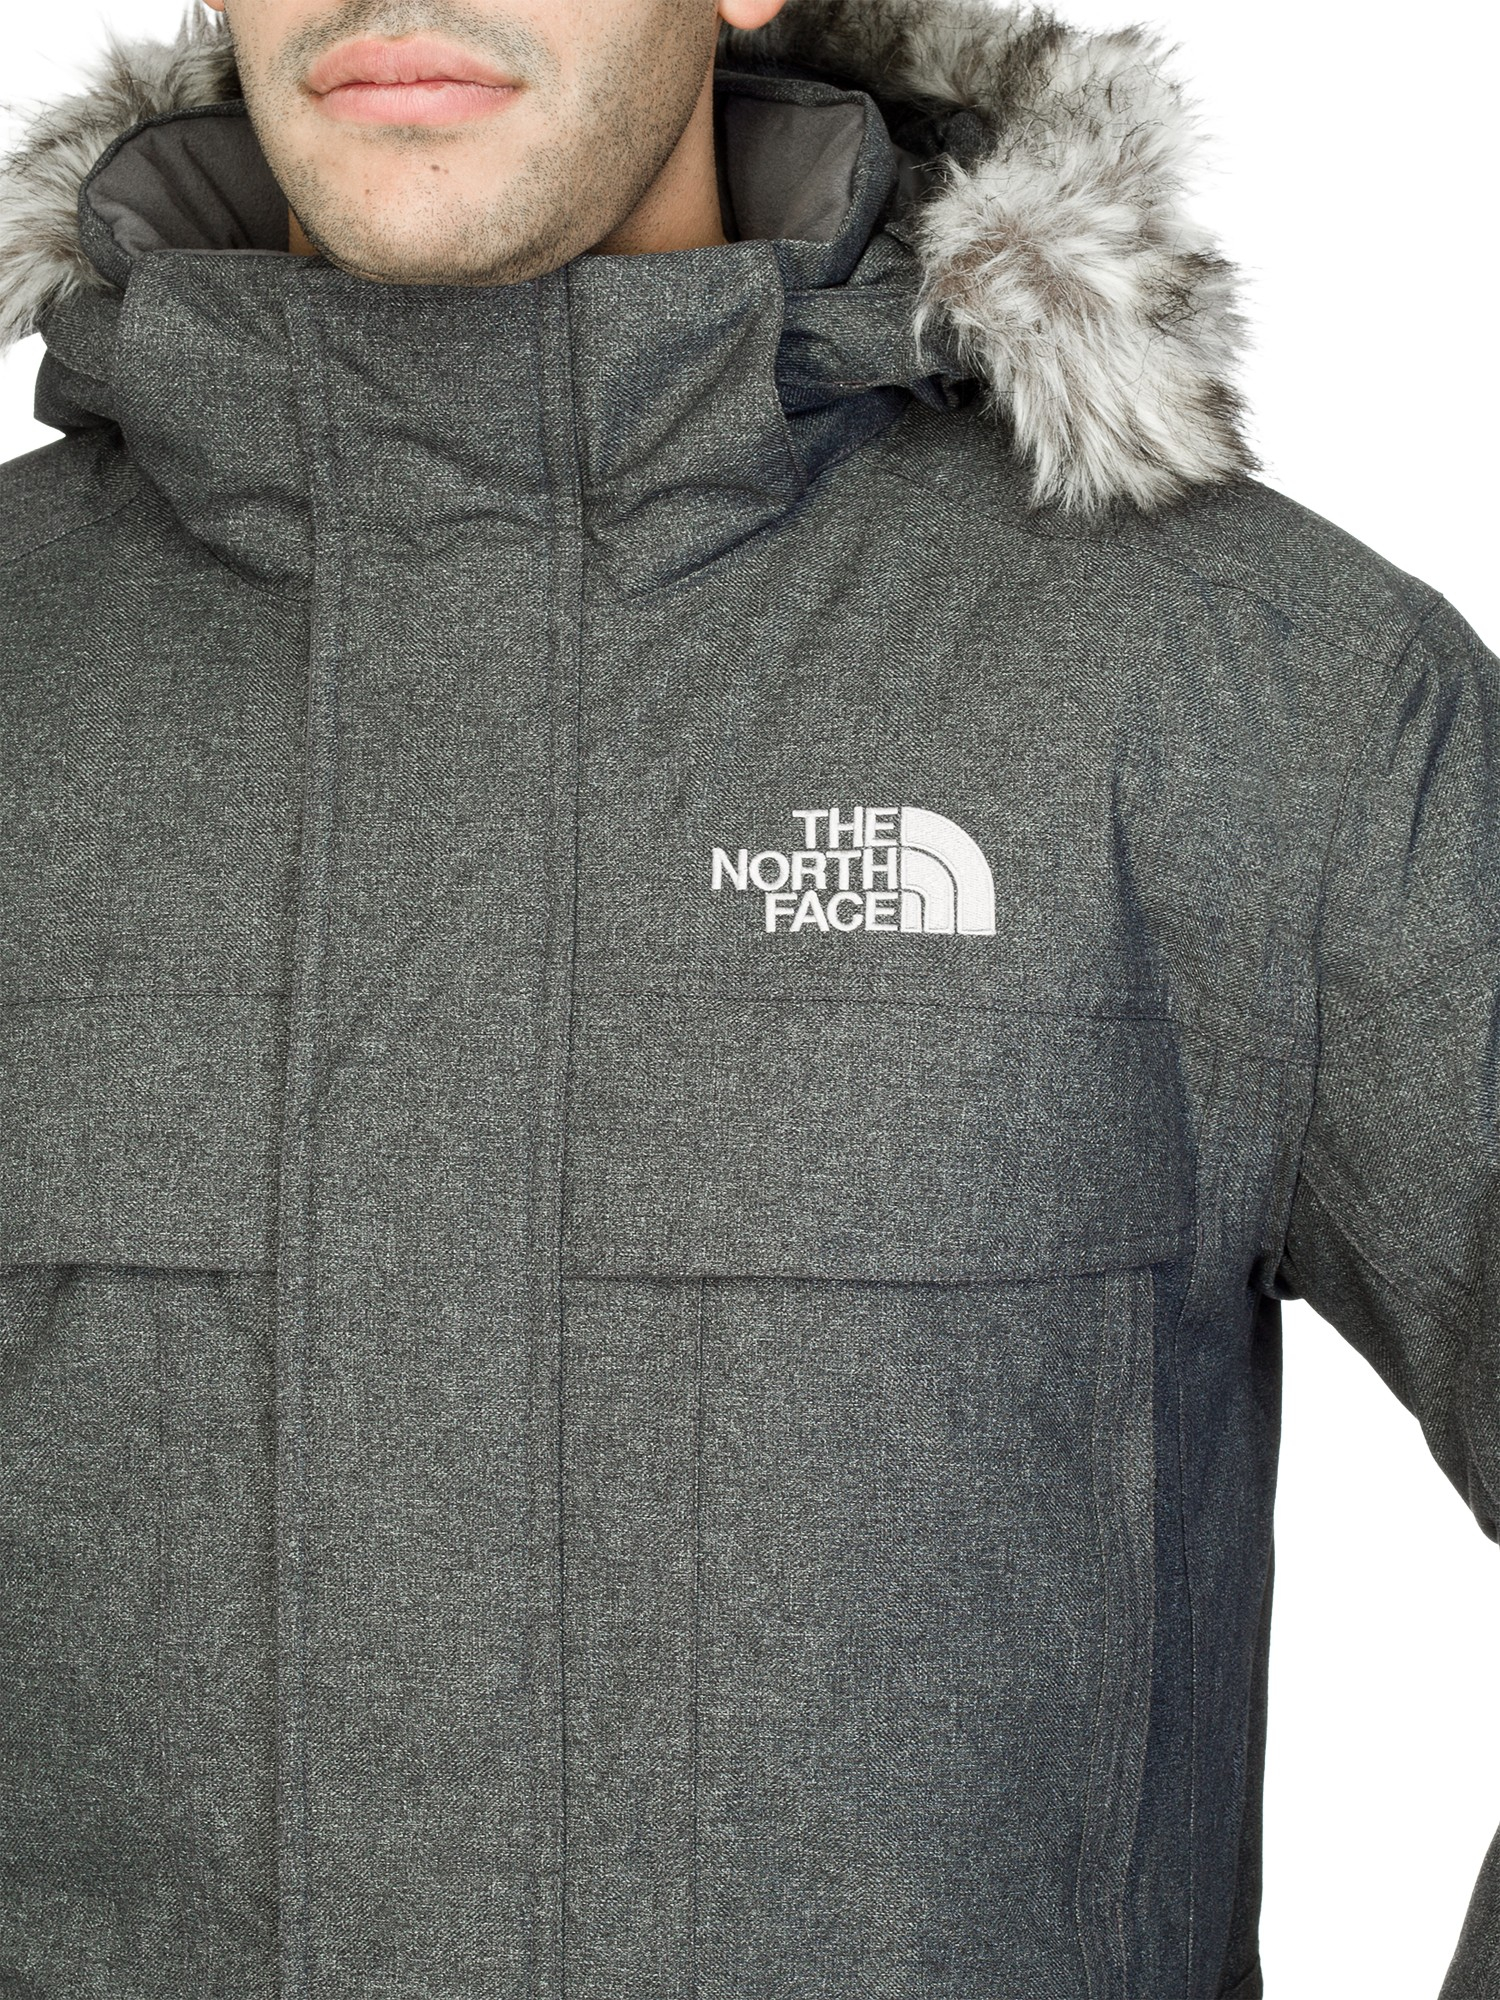 ... cheap the north face mens mcmurdo parka jacket in gray for men lyst  51ead 4ab78 27ec3fee8